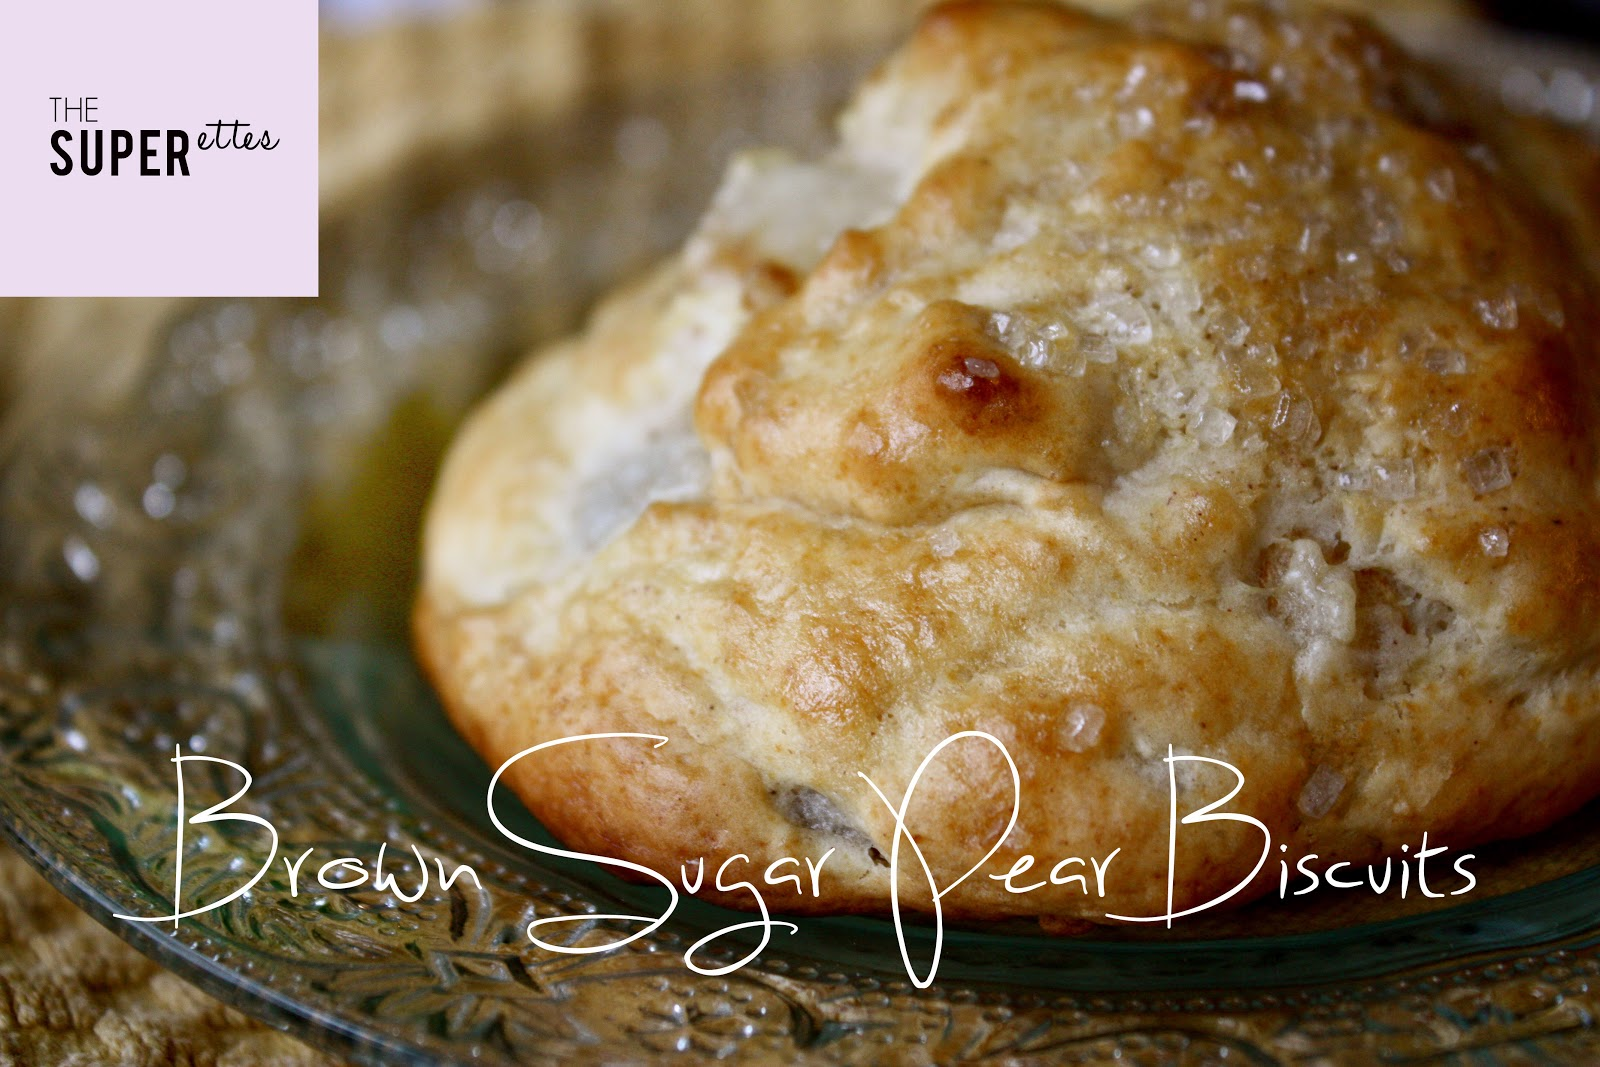 The Superettes: Brown Sugar Pear Biscuits